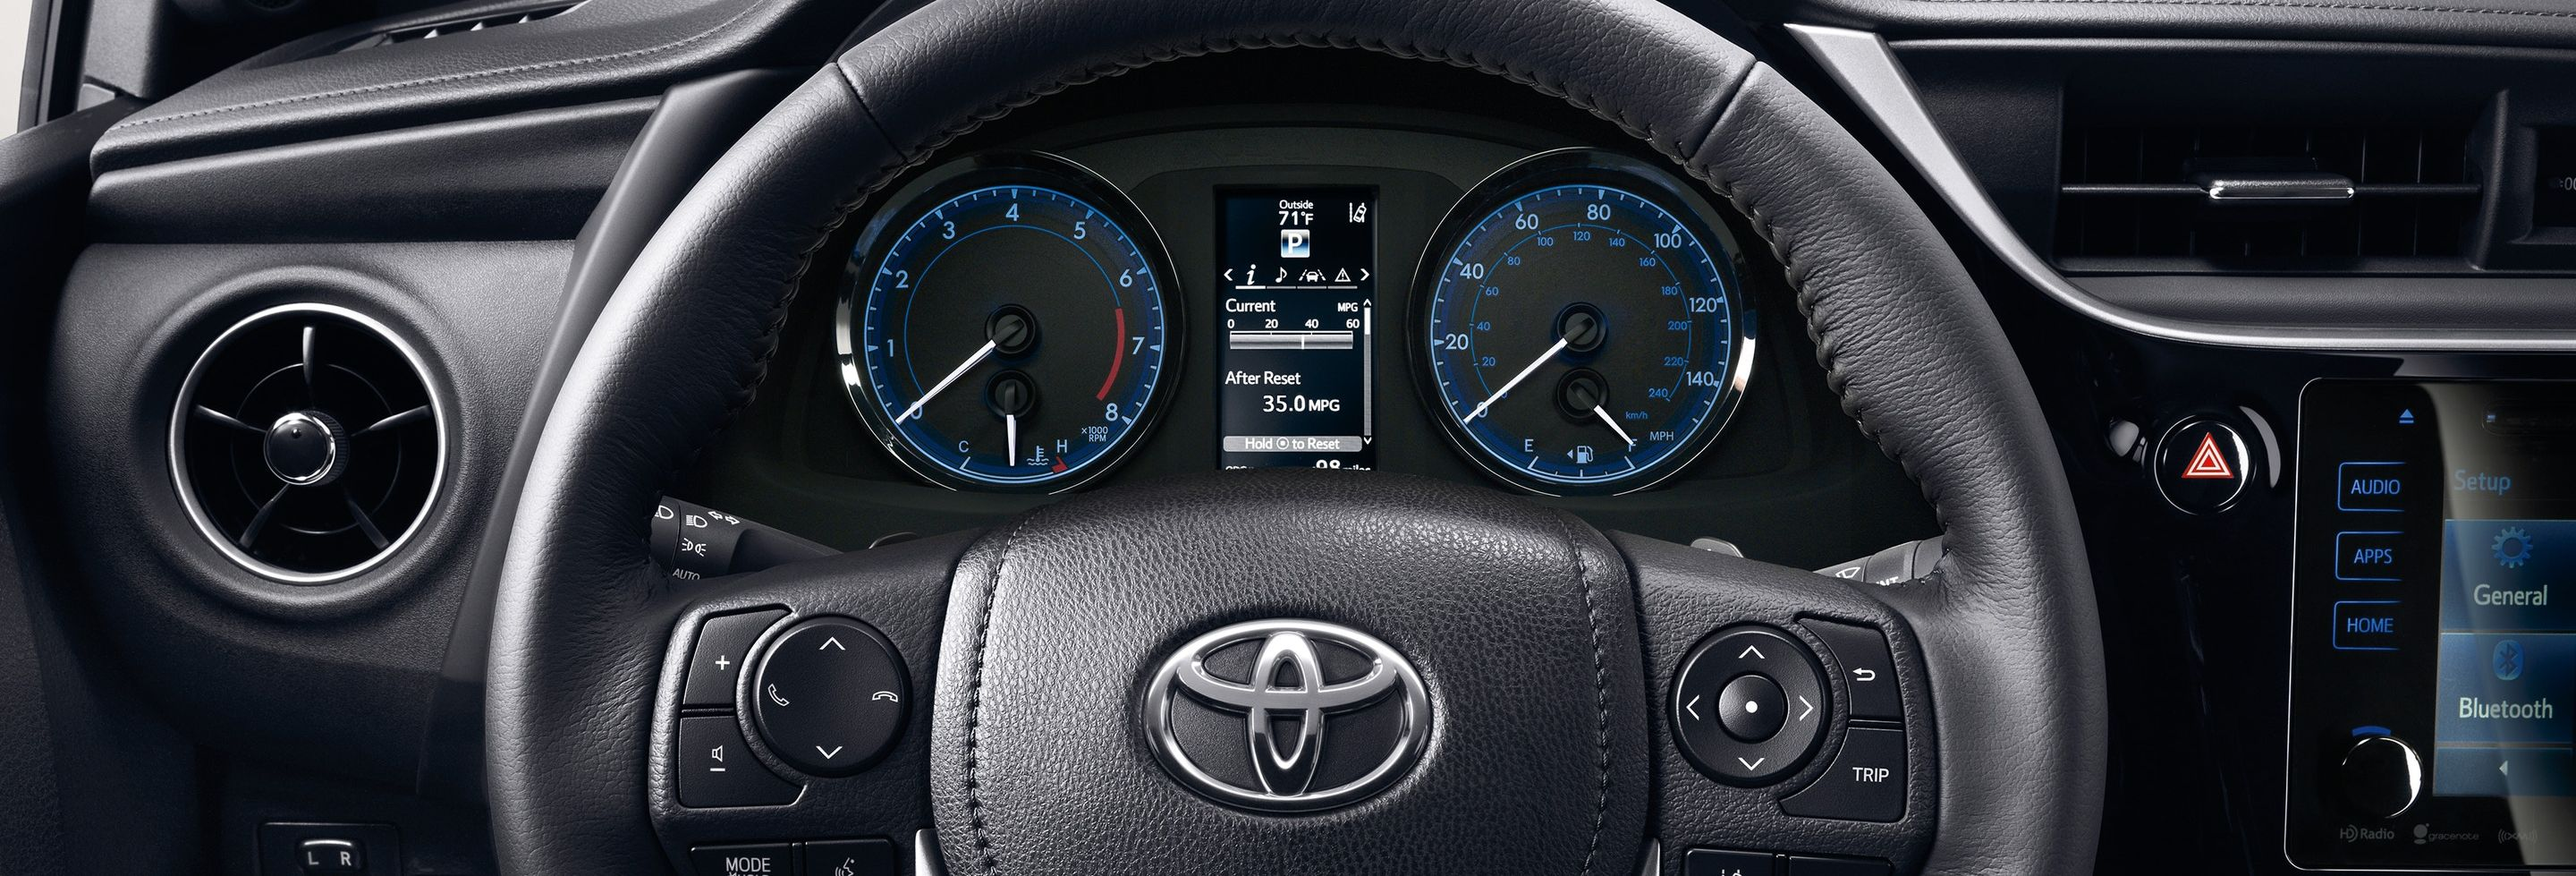 Enjoy the Journey in the 2019 Corolla